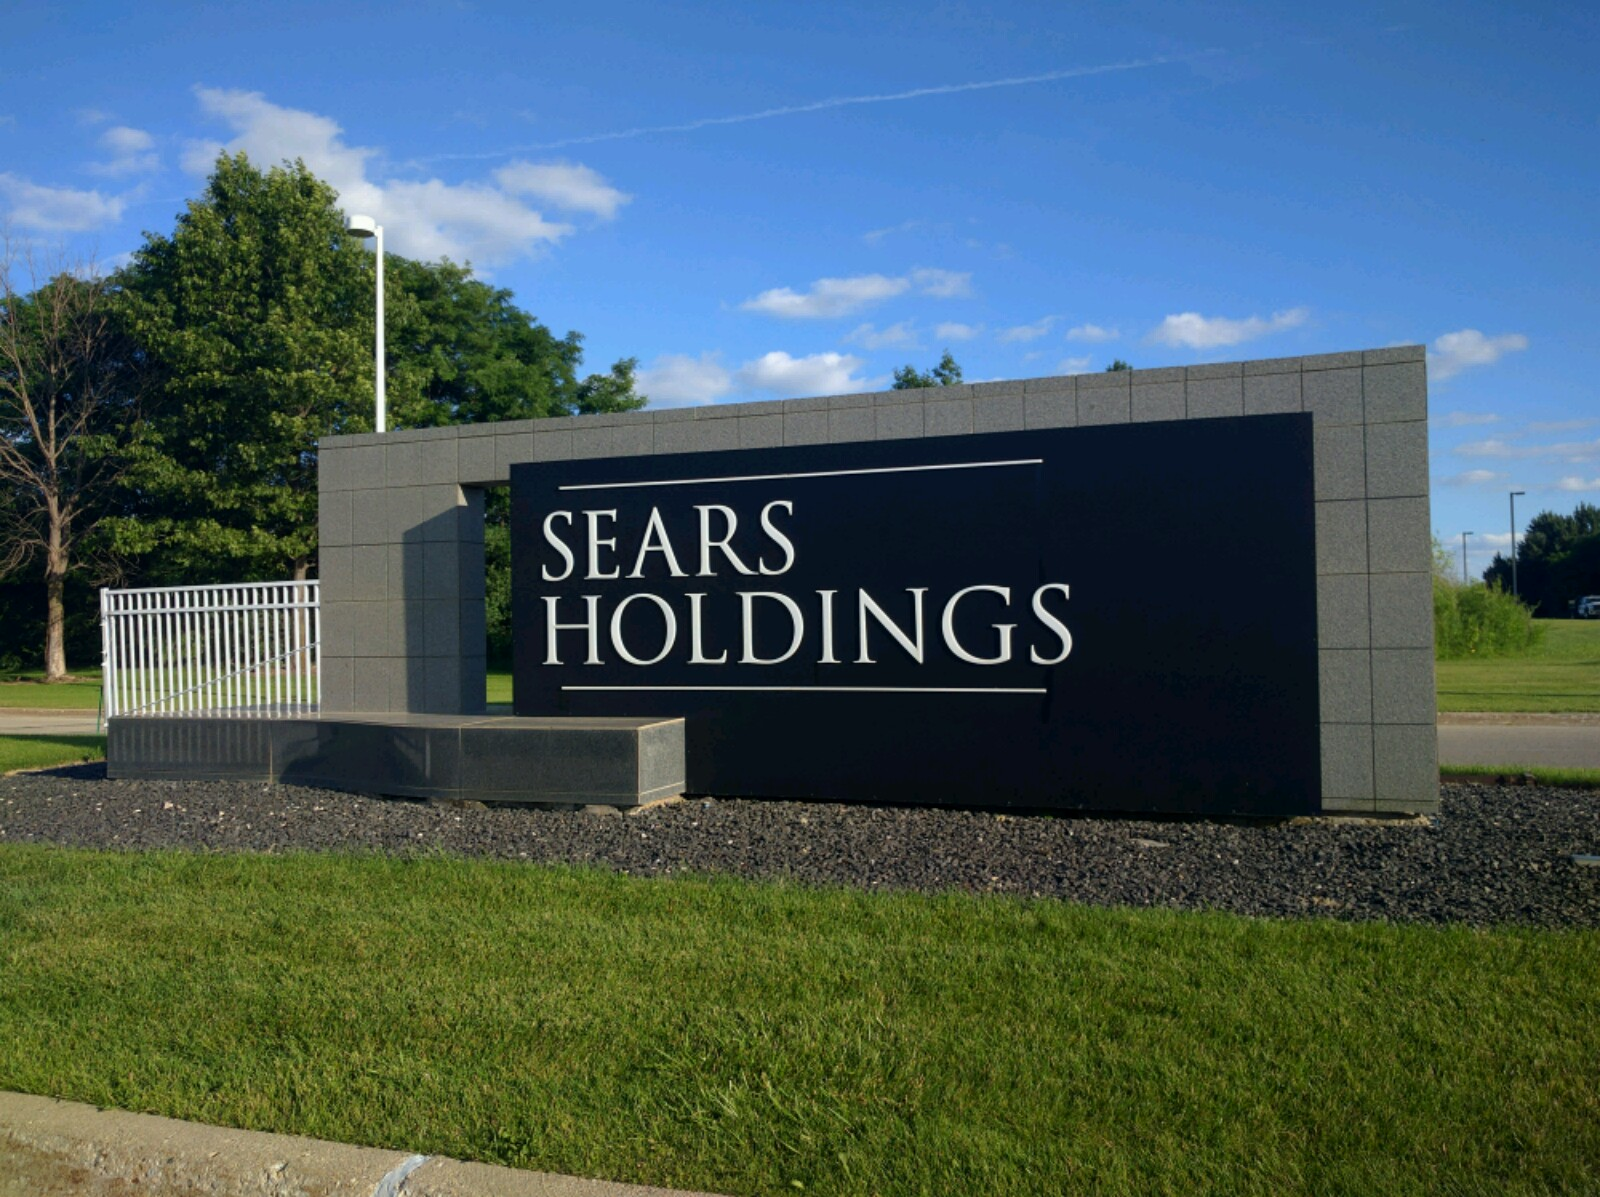 Entrance to Sears Holdings' corporate headquarters in Hoffman Estates, Illinois.